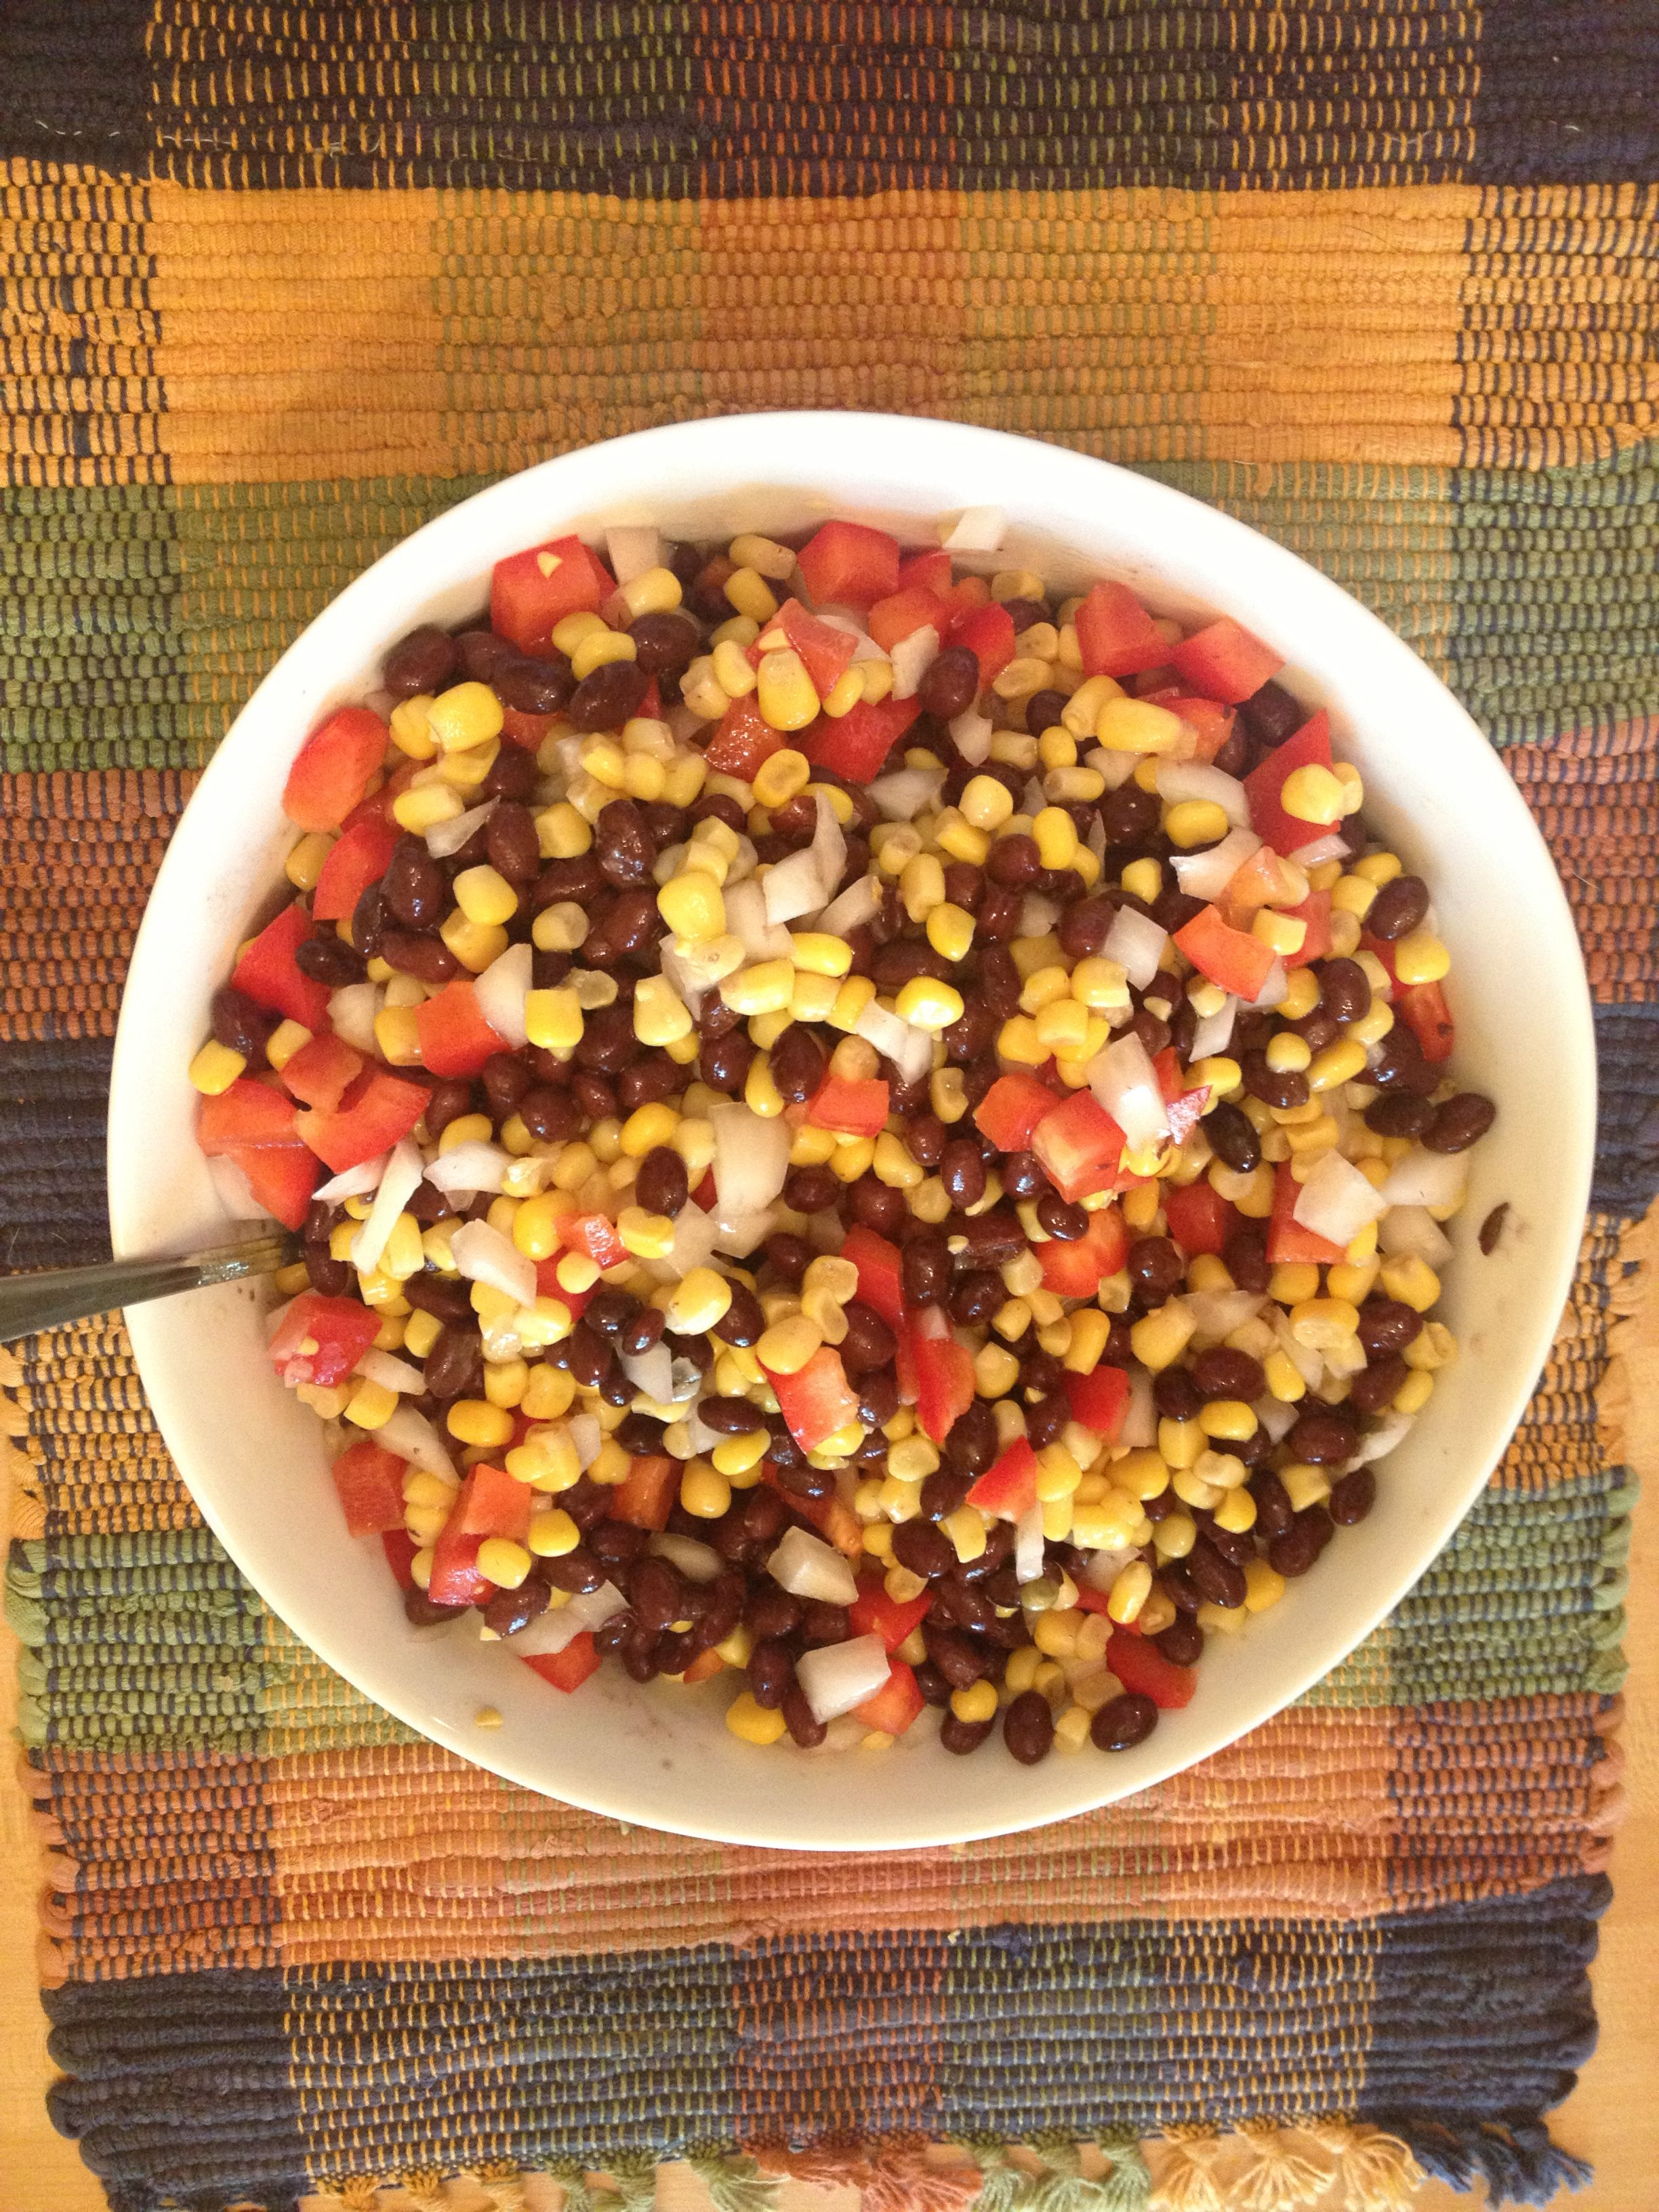 Black Bean and Corn Salsa. 1 can black beans, drained. 1 can corn, drained. 1 red pepper, chopped. 1 small white onion, chopped. 3 tablespoons apple cider vinegar and 3 tablespoons olive oil. Mix and serve with tortilla chips. Enjoy!